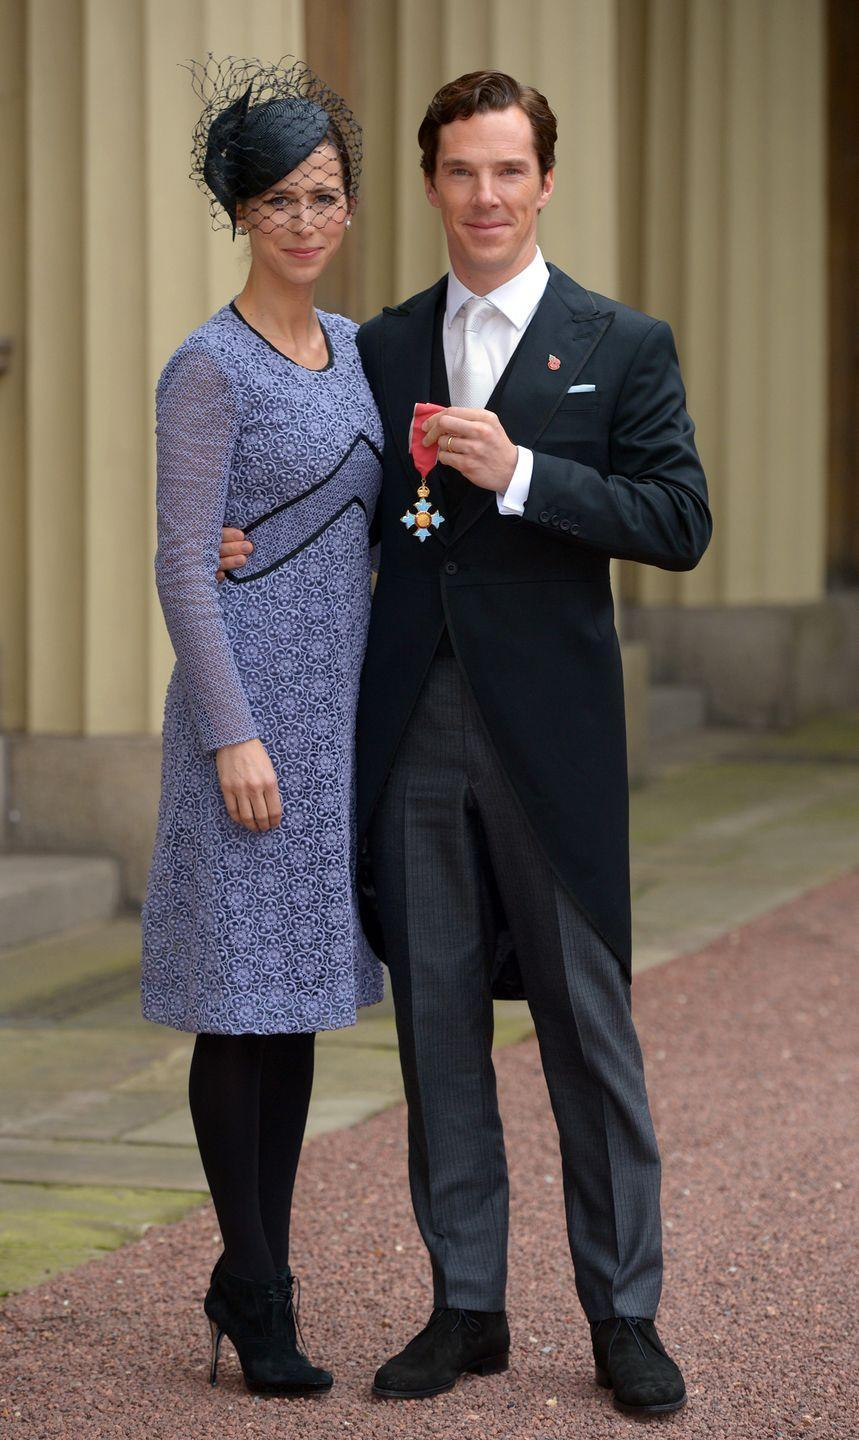 <p>Benedict Cumberbatch was bestowed with a Commander of the British Empire award in 2015. For the affair, the actor sported a traditional morning coat, while his wife, Sophie Hunter, wore a shift dress and netted fascinator.</p>